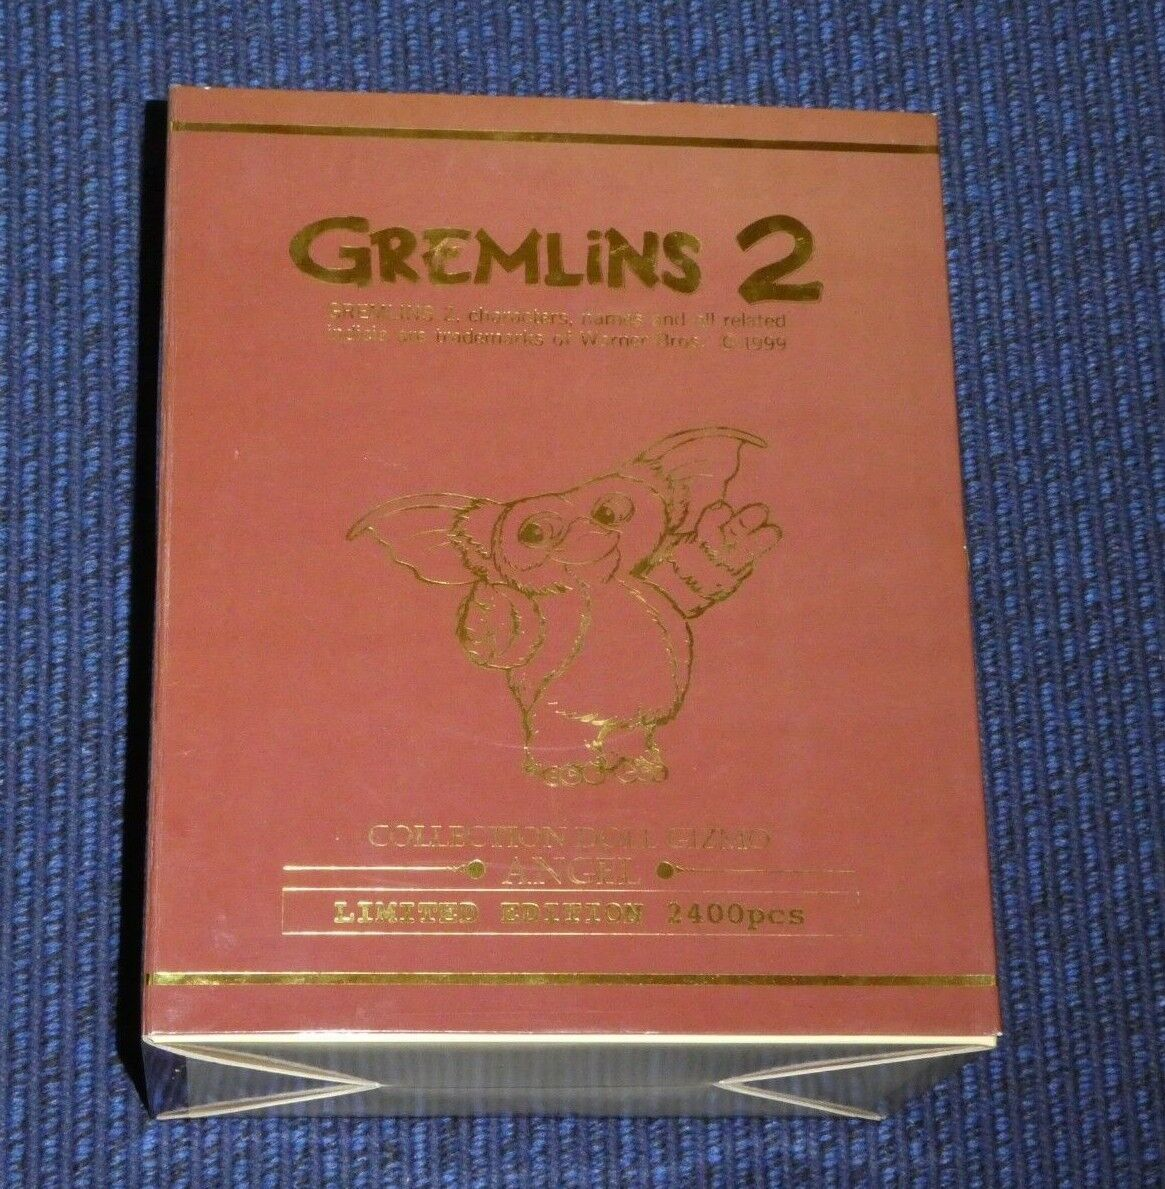 GREMLINS 2 ANGEL MOHAWK LIMITED 2400PCS COLLECTION DOLL FIGURE JUN PLANNING RARE